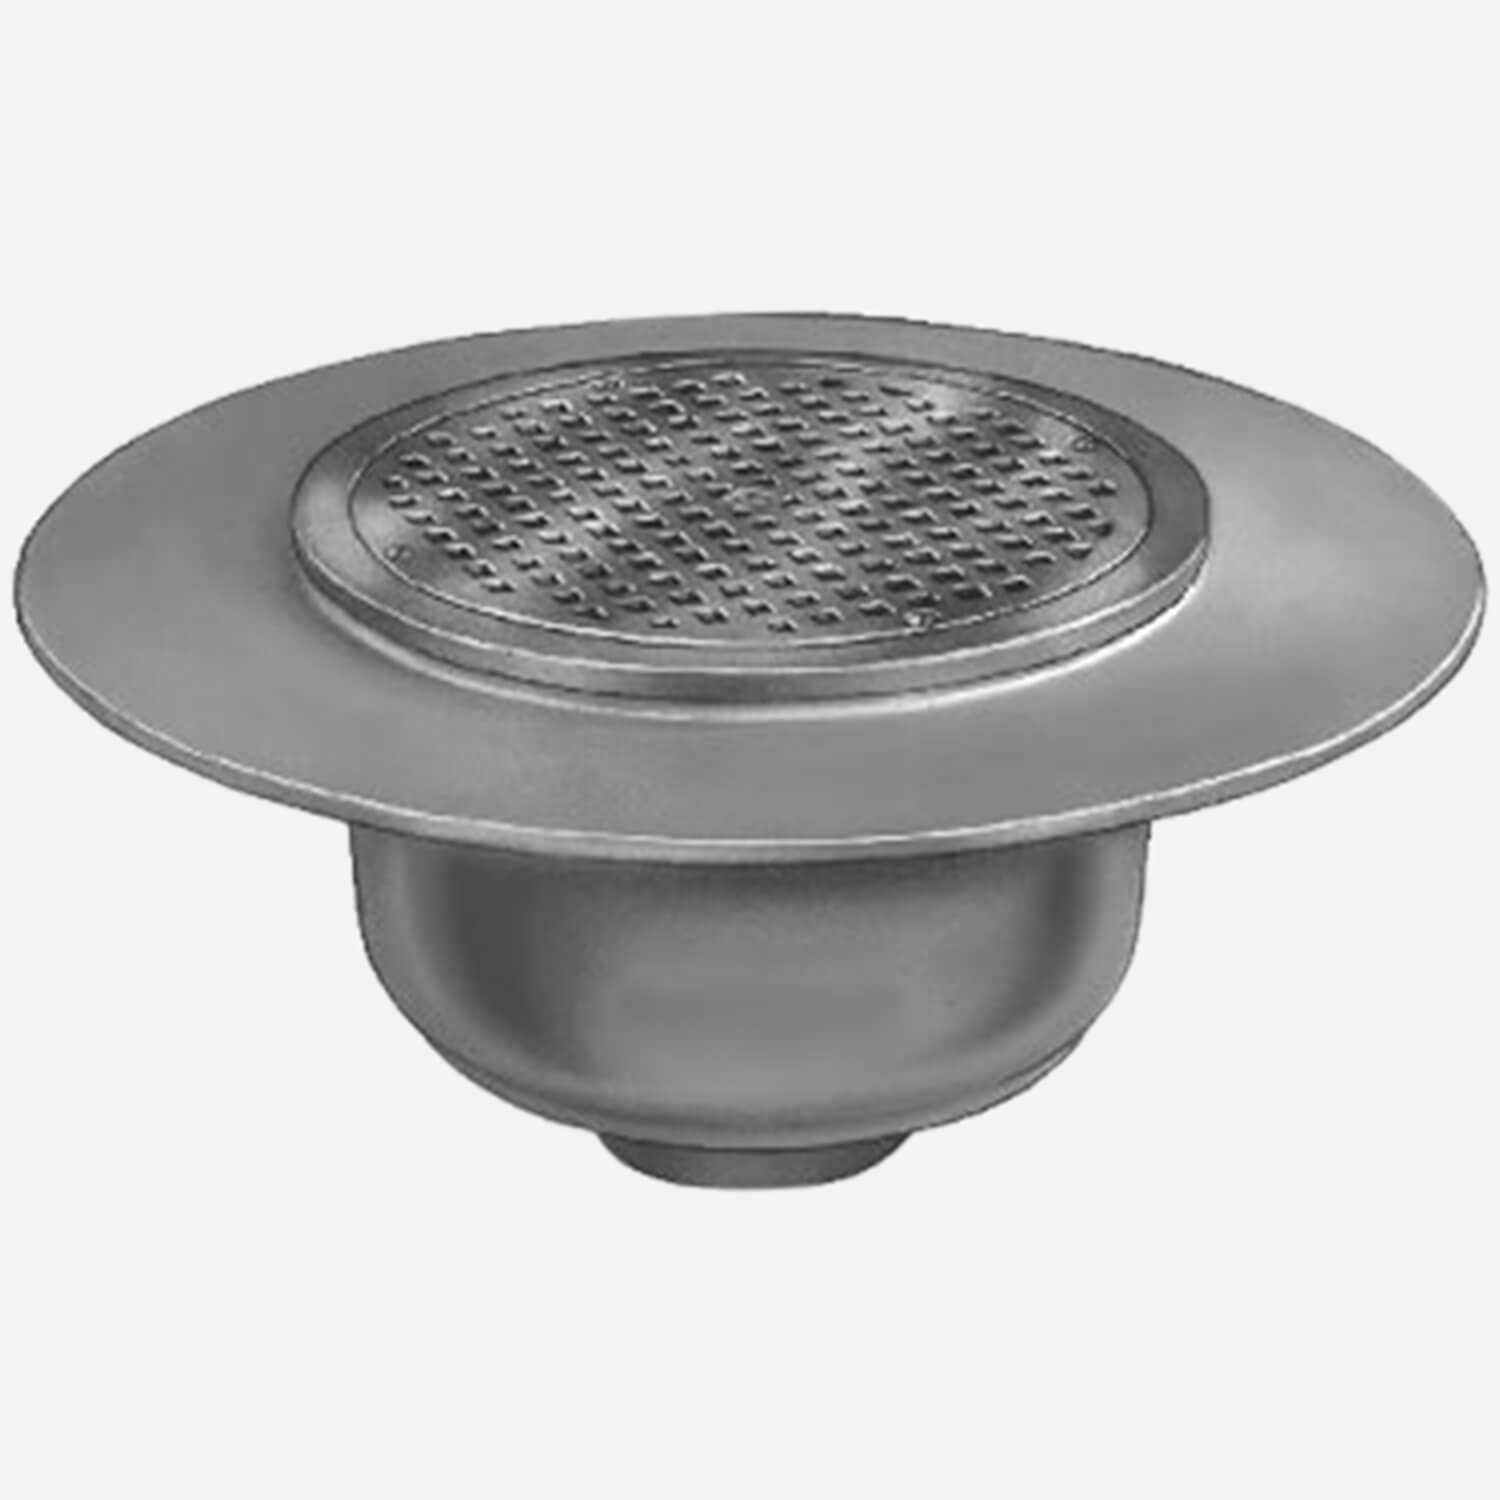 Sani-Ceptor® Sanitary Acid Resistant Coated Sanitary Floor and Indirect Waste Drains with Deep Receptor, Wide Flange and Round Nickel Bronze Top